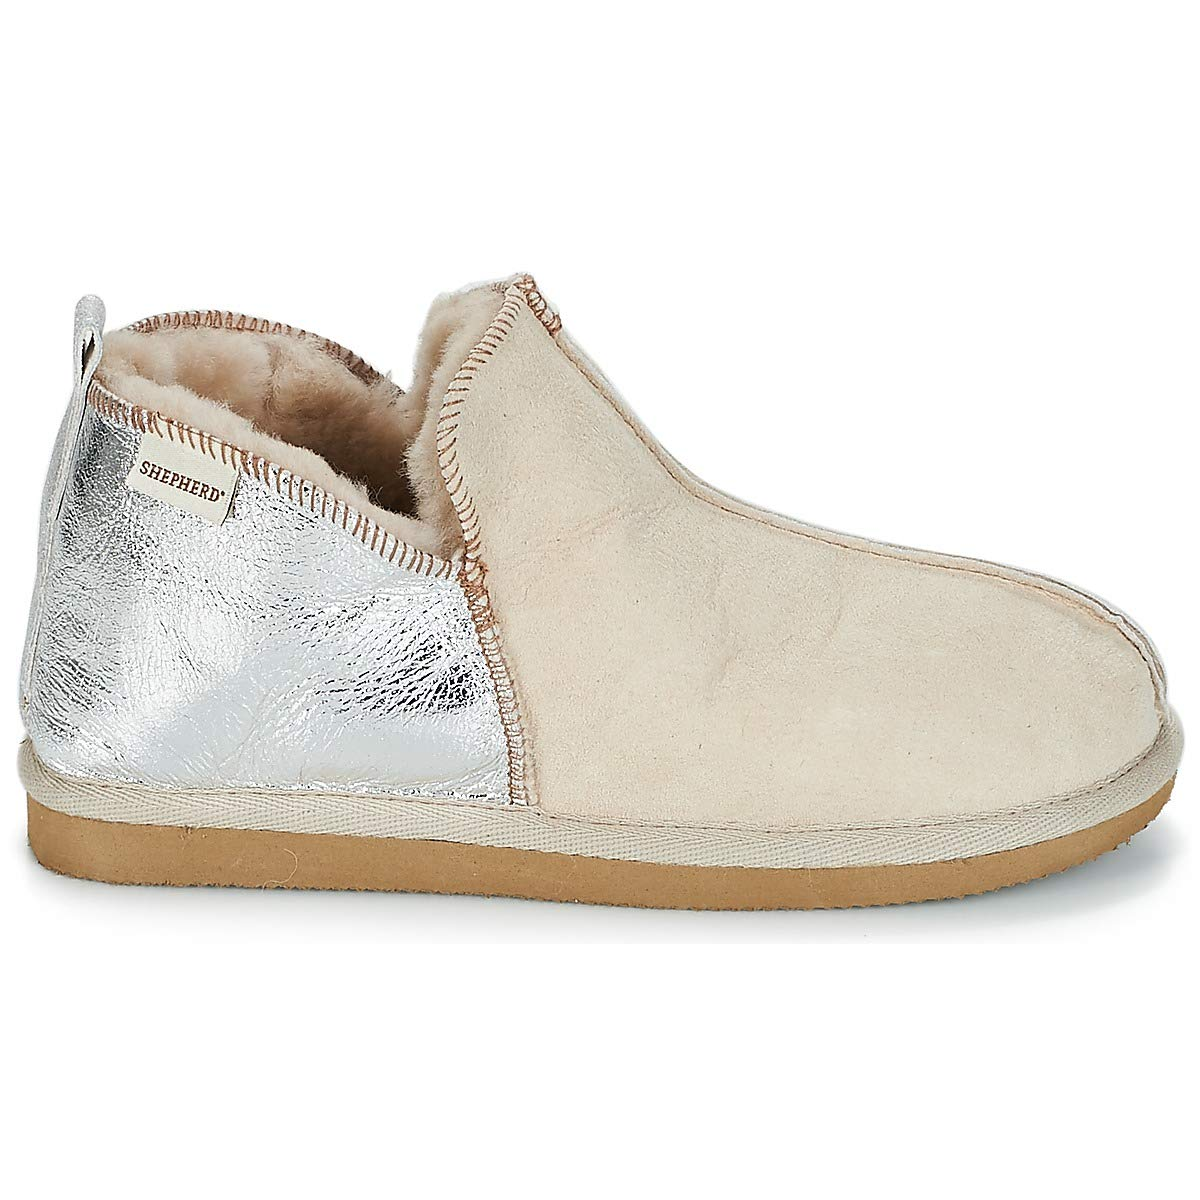 322f5242a1bf Shepherd of Sweden Annie Honey and Silver Slipper Boot  Amazon.co.uk  Shoes    Bags